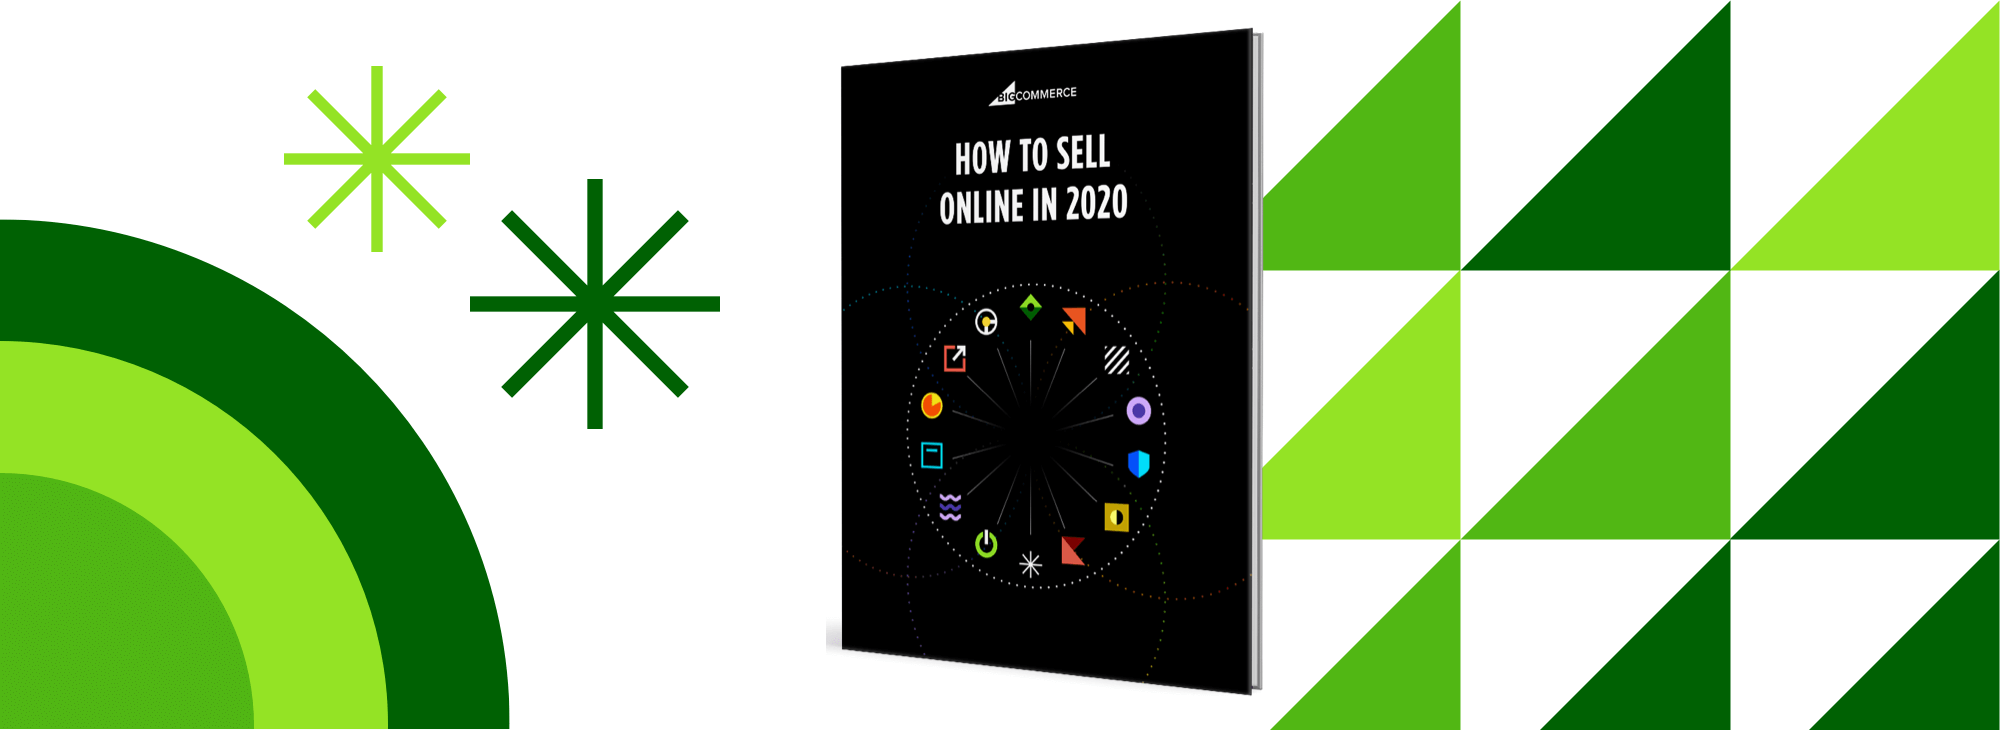 7 Ways To Find Niche Products And Start Selling Online 2020